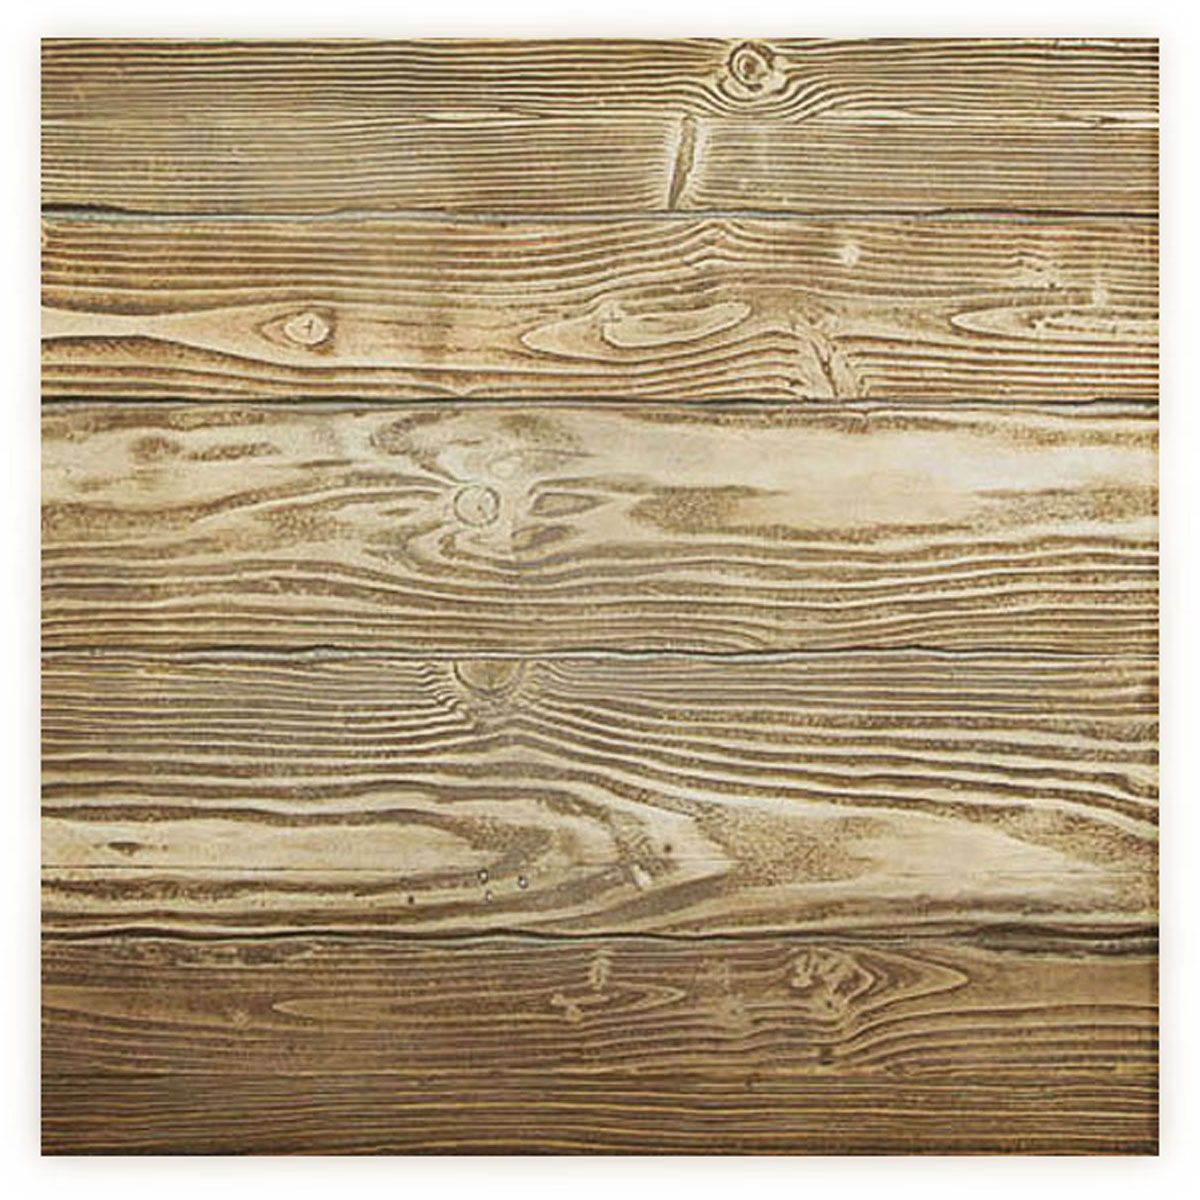 8 Inch W X 10 Inch H Sand Blasted Endurathane Faux Wood Siding Panel Sample Weathered White 19 99 Wood Panel Siding Wood Siding Faux Wood